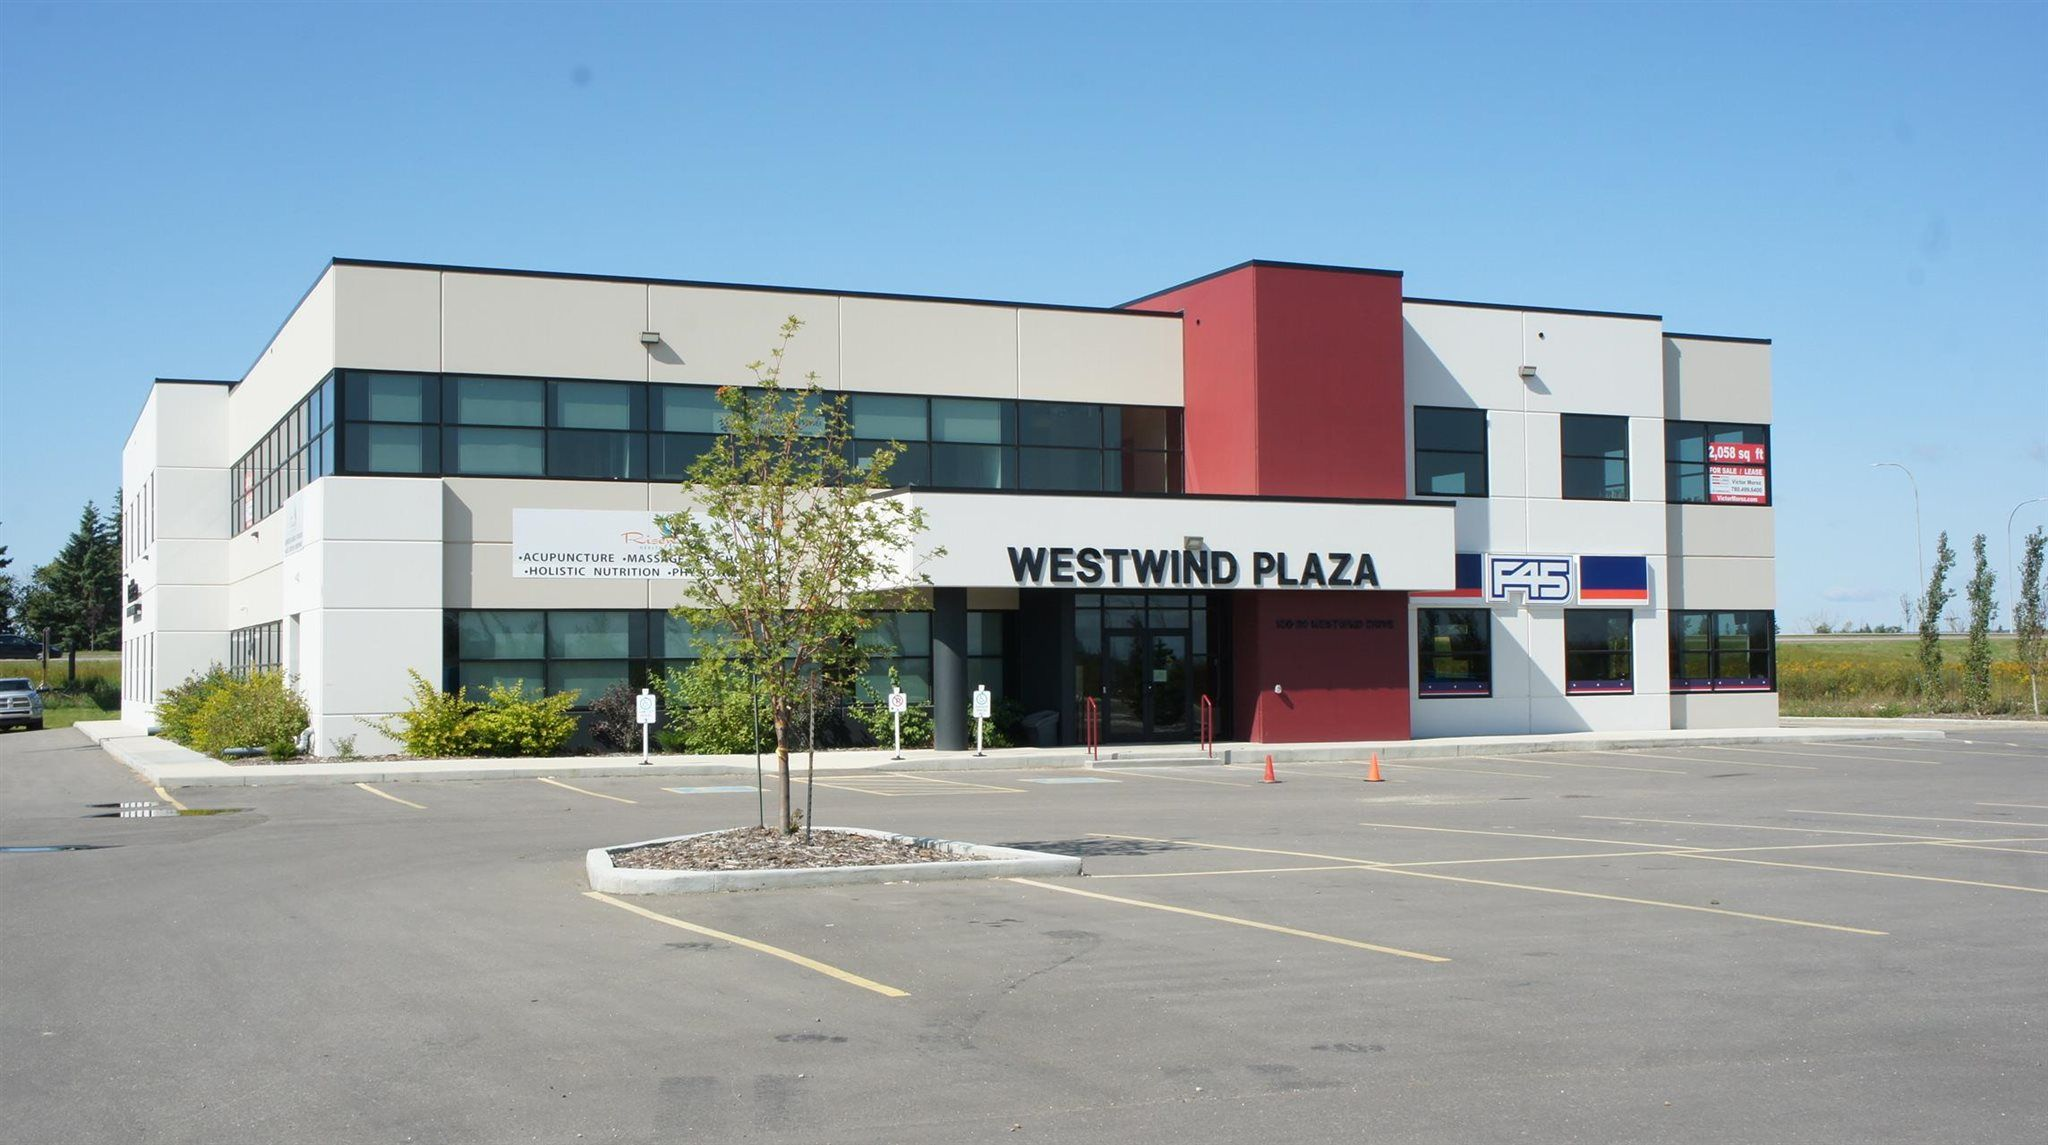 Main Photo: 124 20 WESTWIND Drive: Spruce Grove Office for sale or lease : MLS®# E4252562